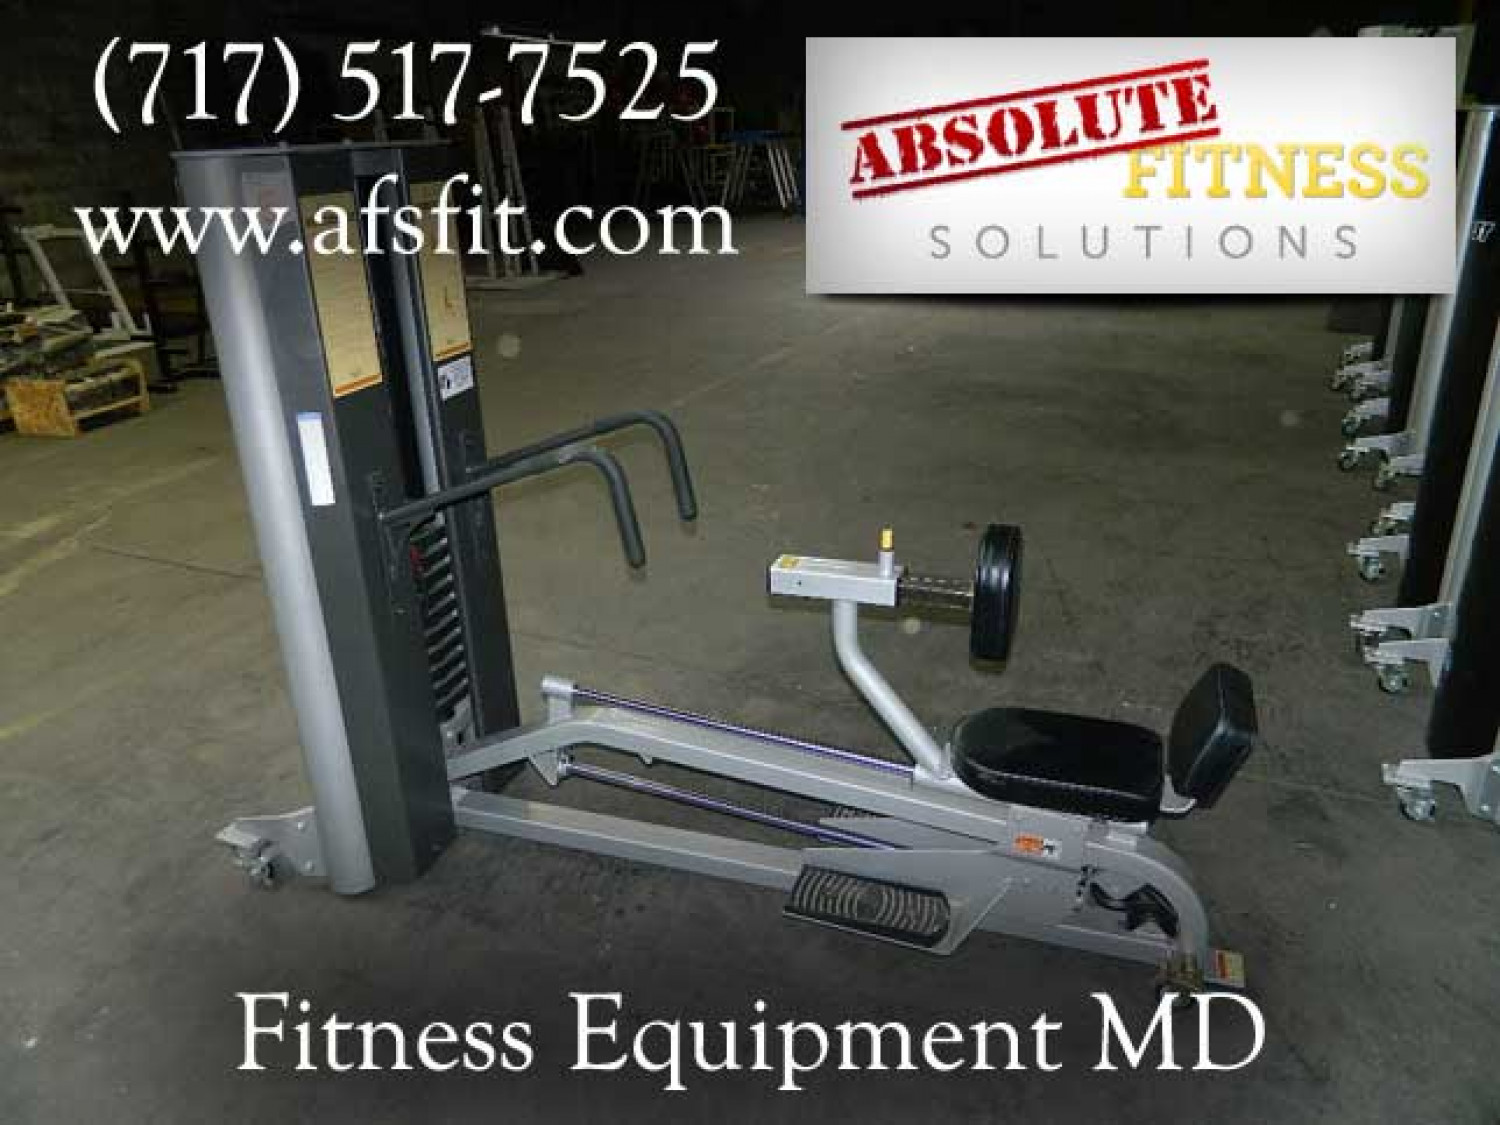 High Quality Equipment to Strengthen Your Fitness Infographic